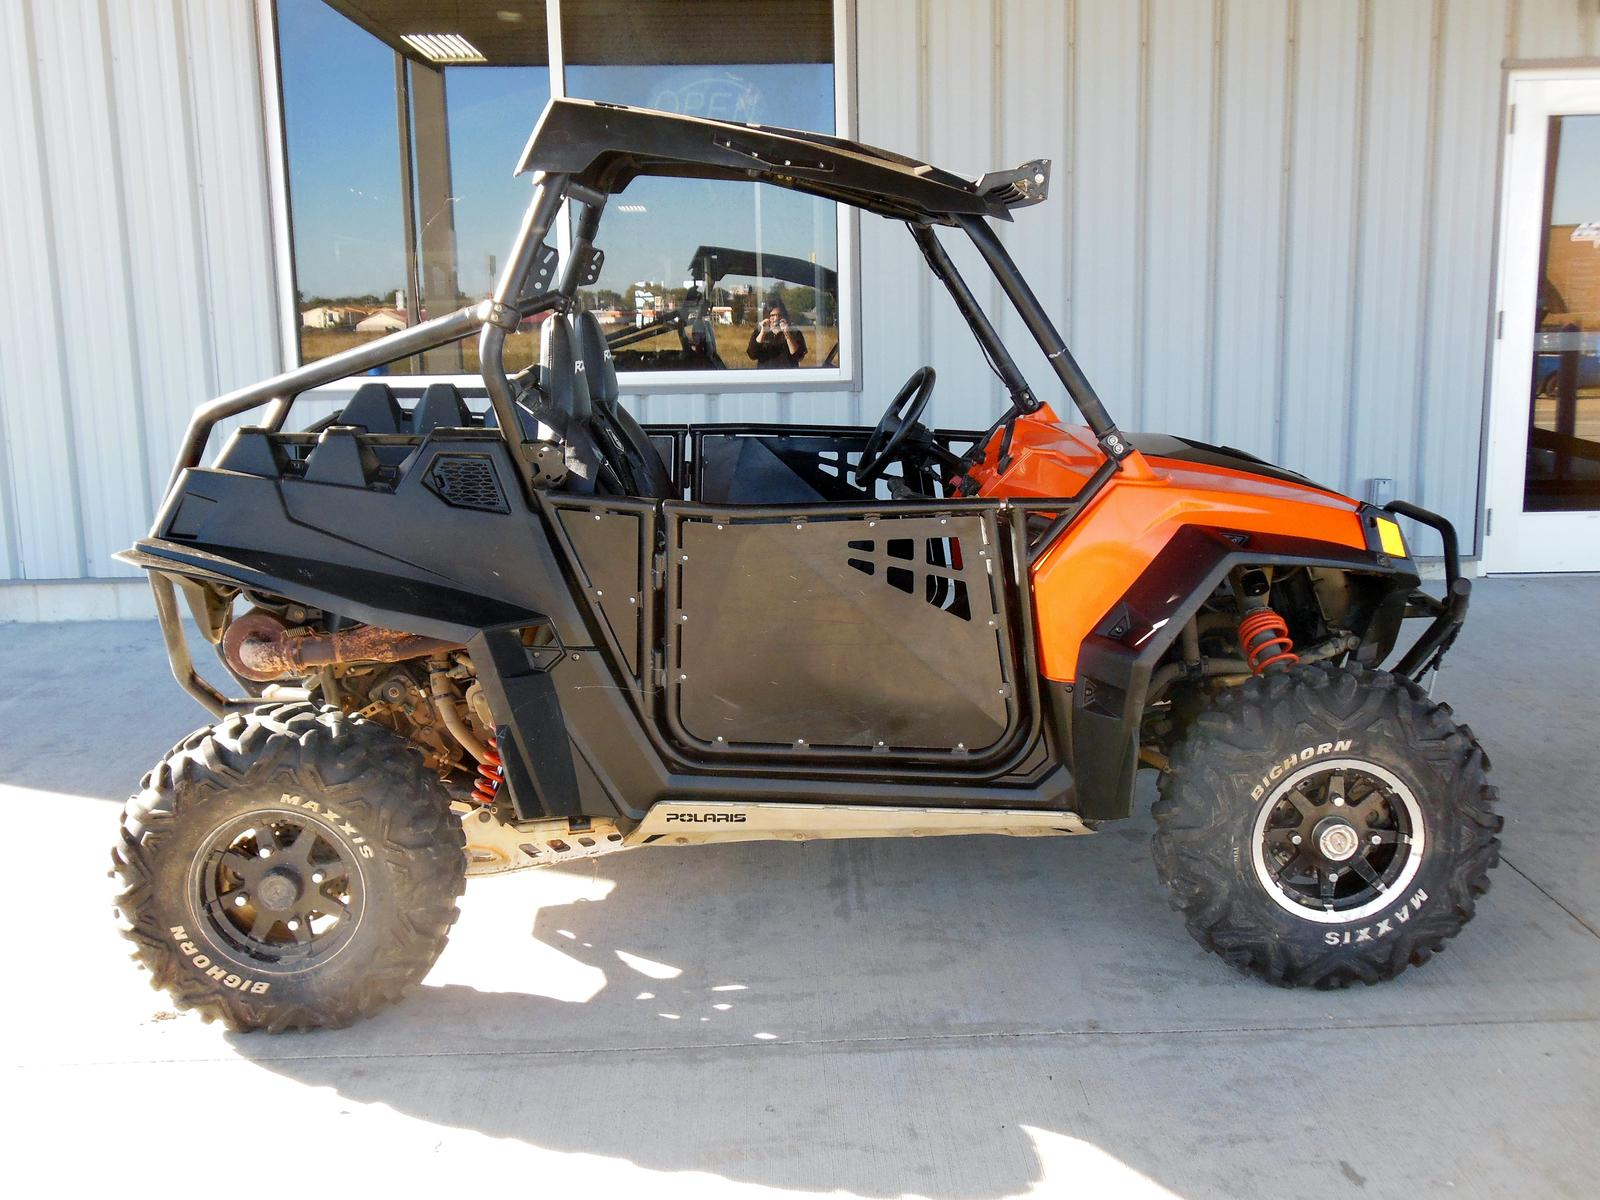 Inventory ACTION POWERSPORTS LITCHFIELD, IL 217-324-6031